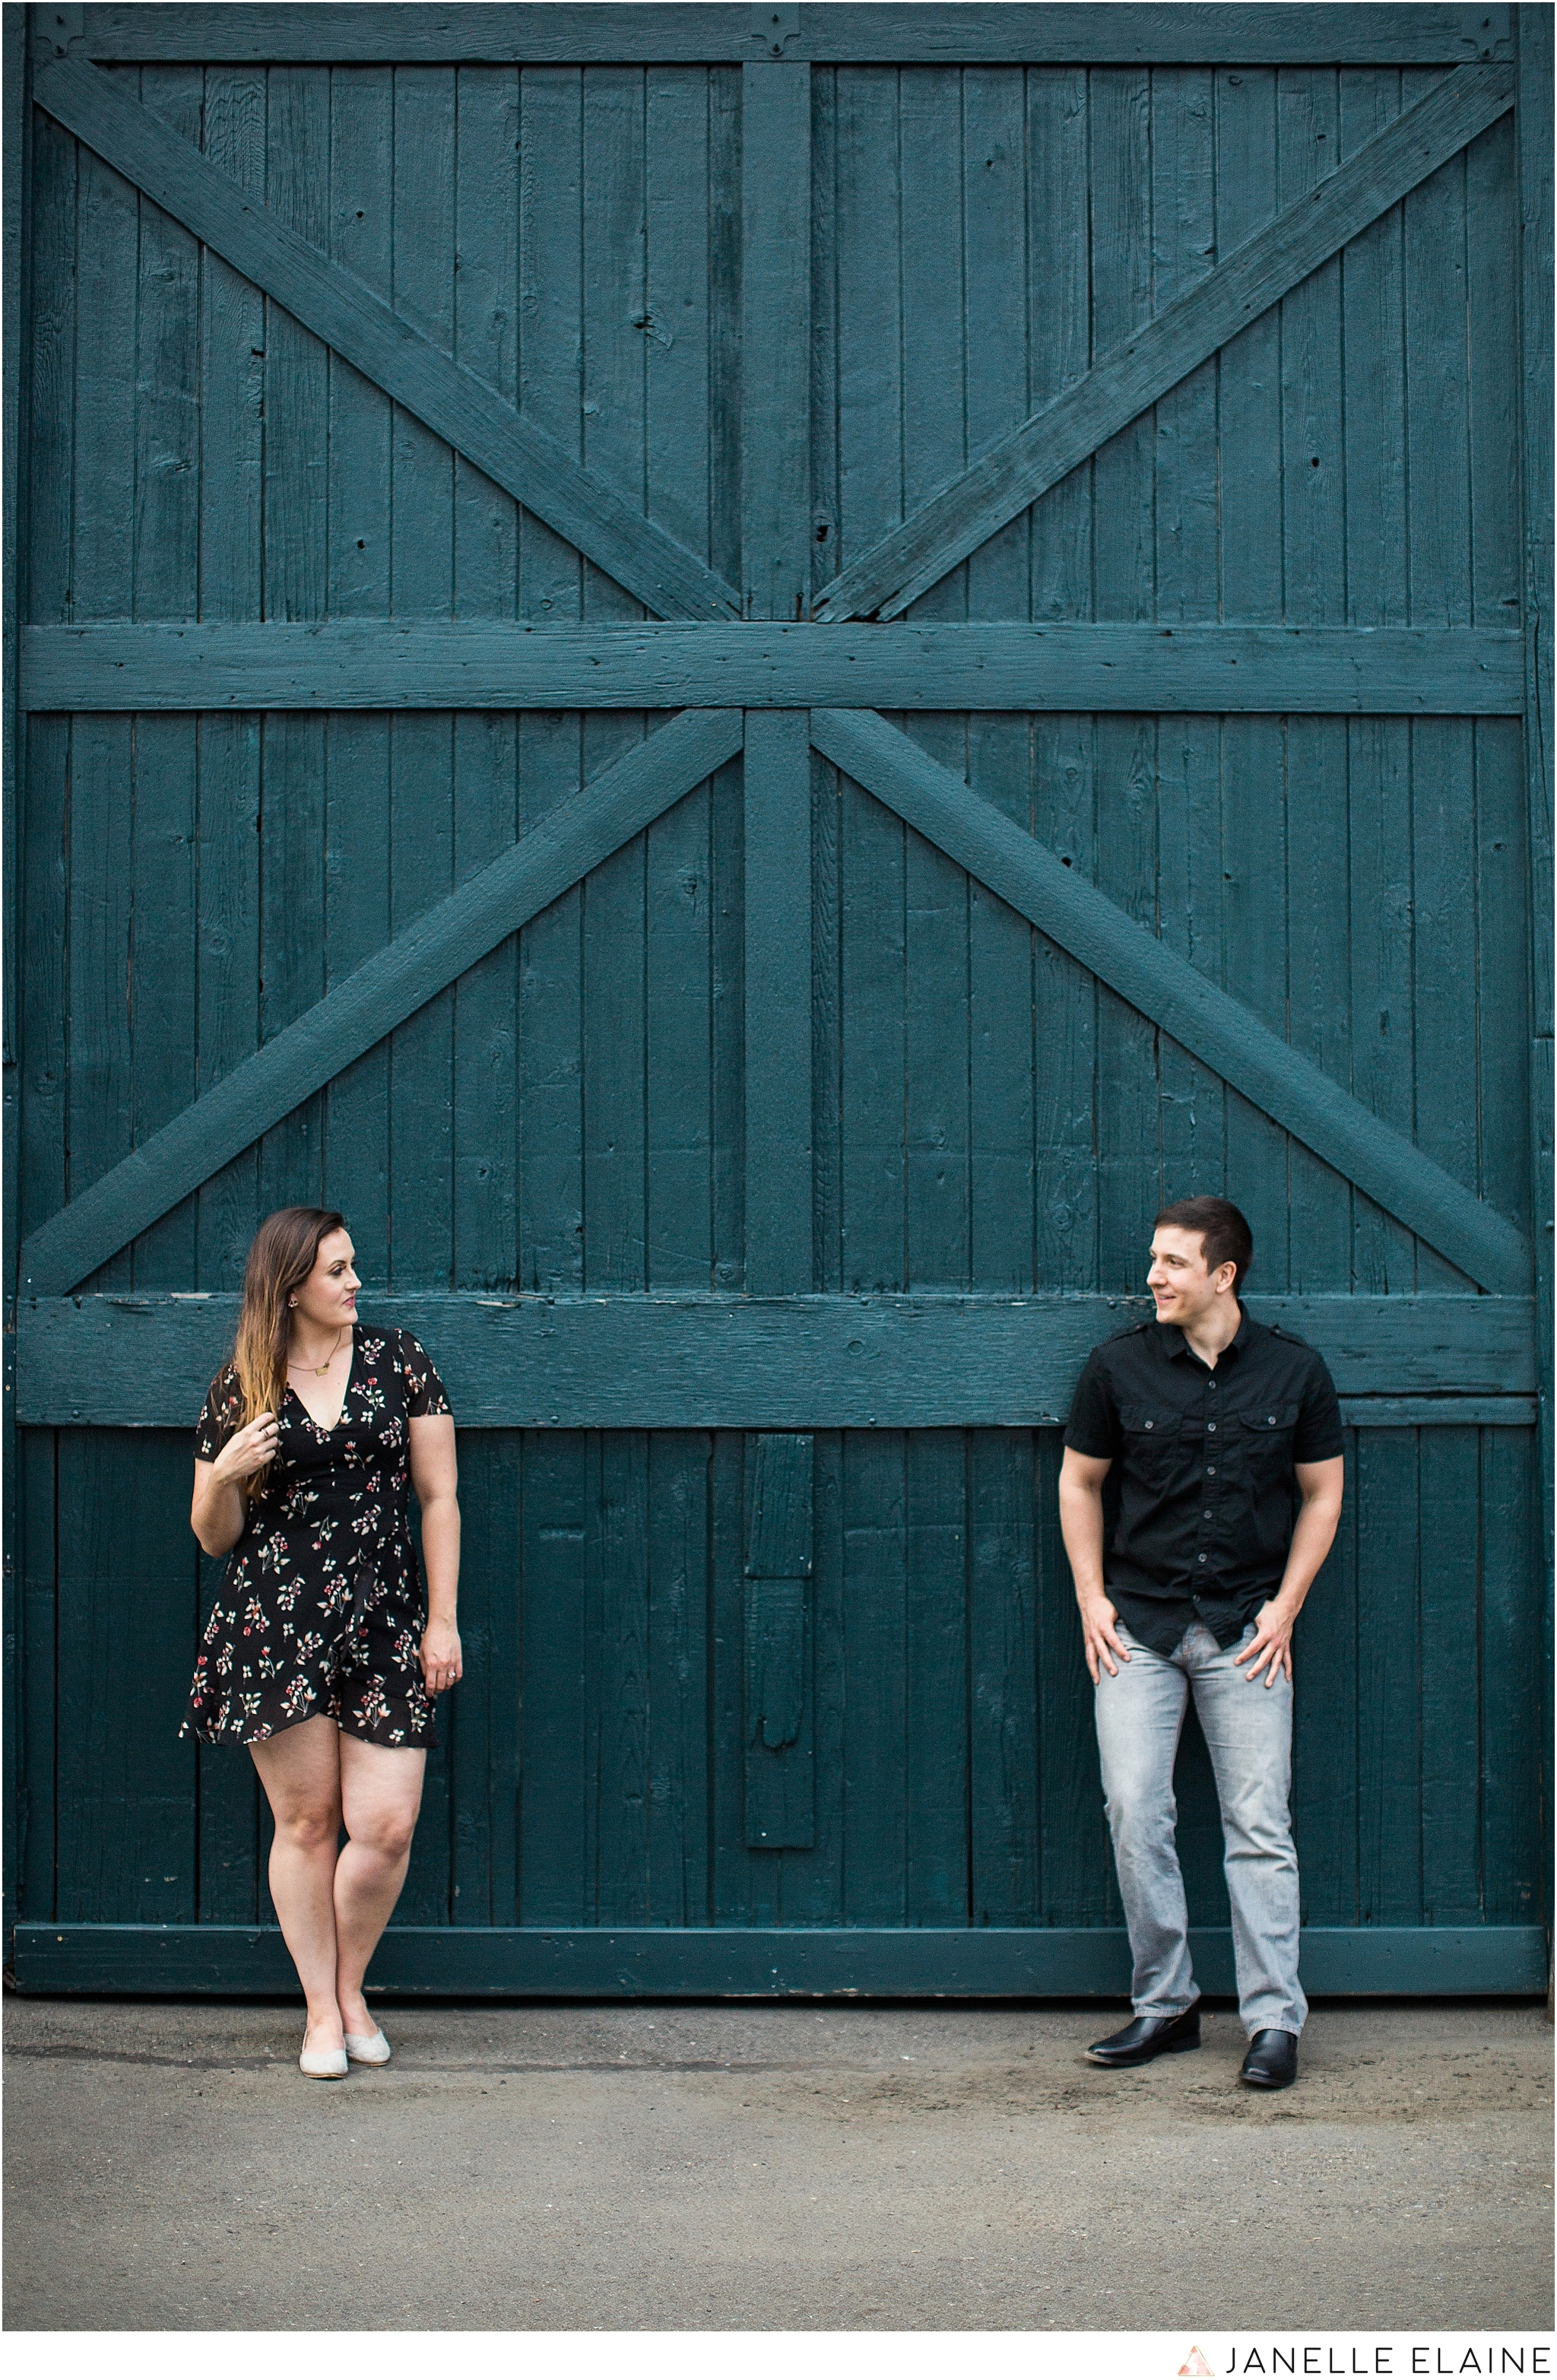 karen ethan-georgetown engagement photos-seattle-janelle elaine photography-80.jpg